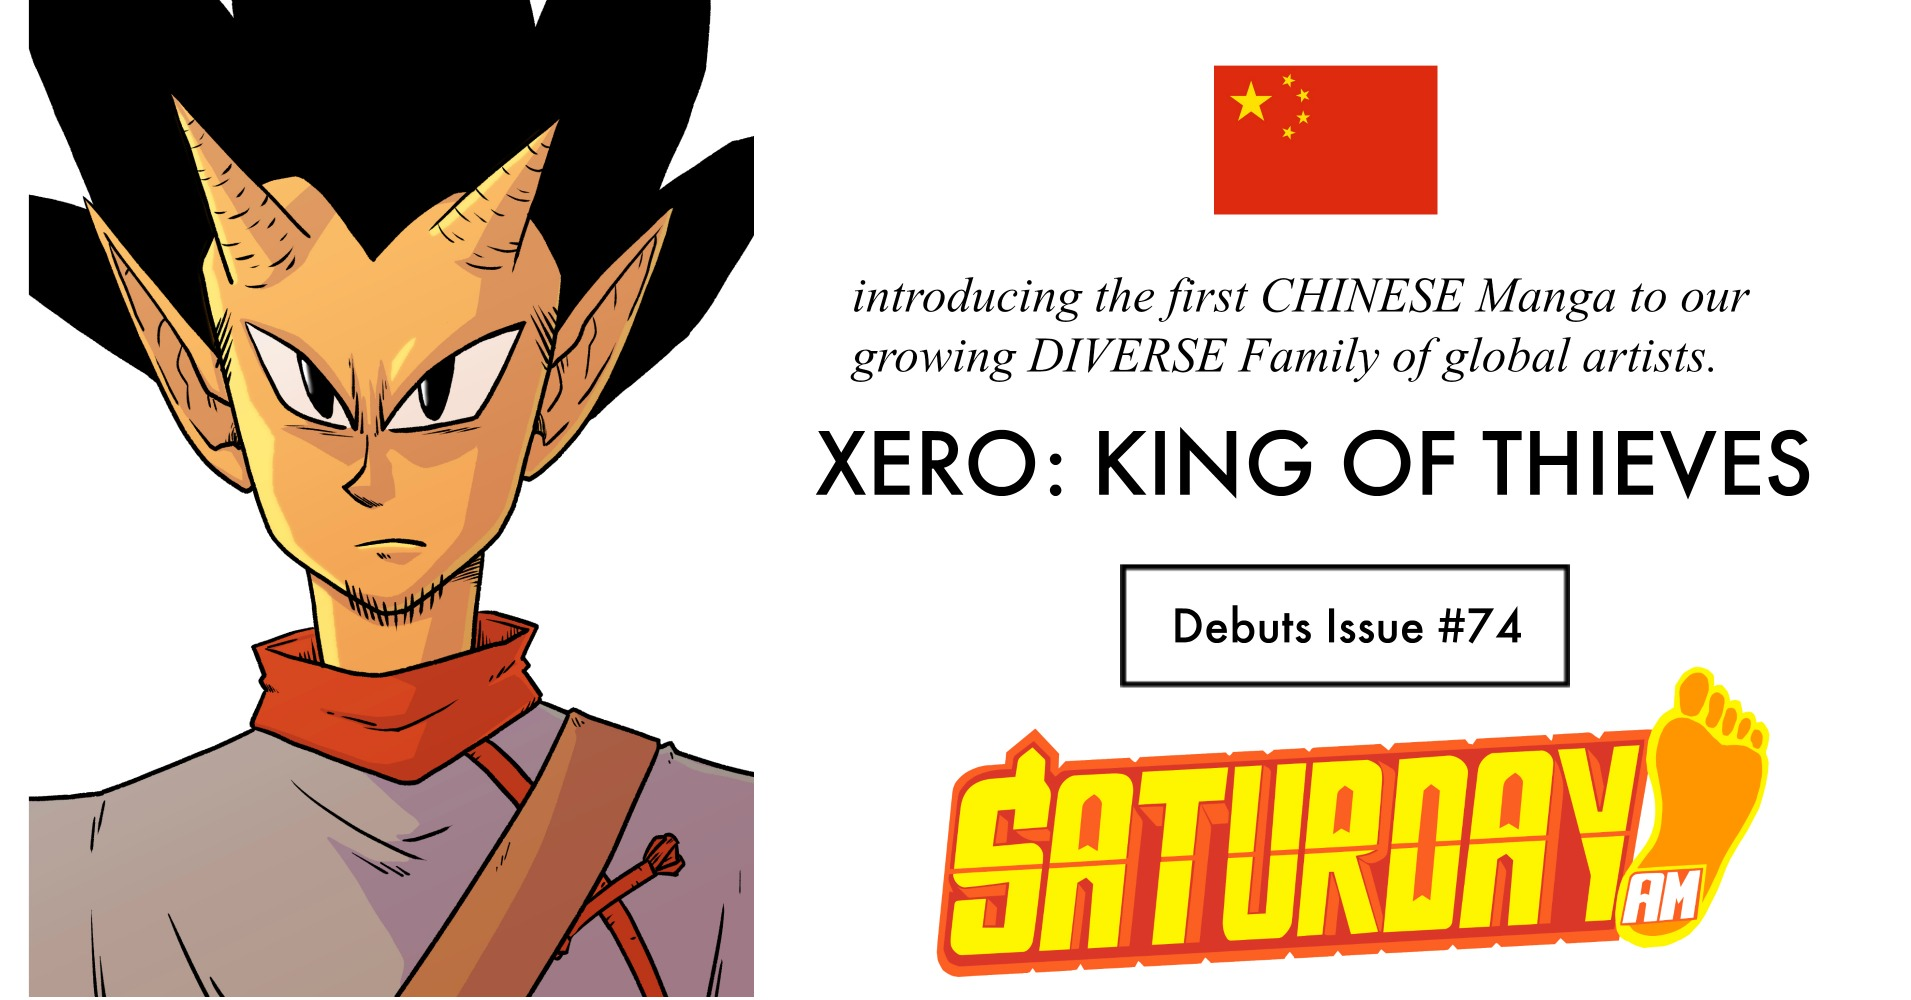 New shonen manga XERO: KING OF THIEVES is from China and will debut in Issue 74